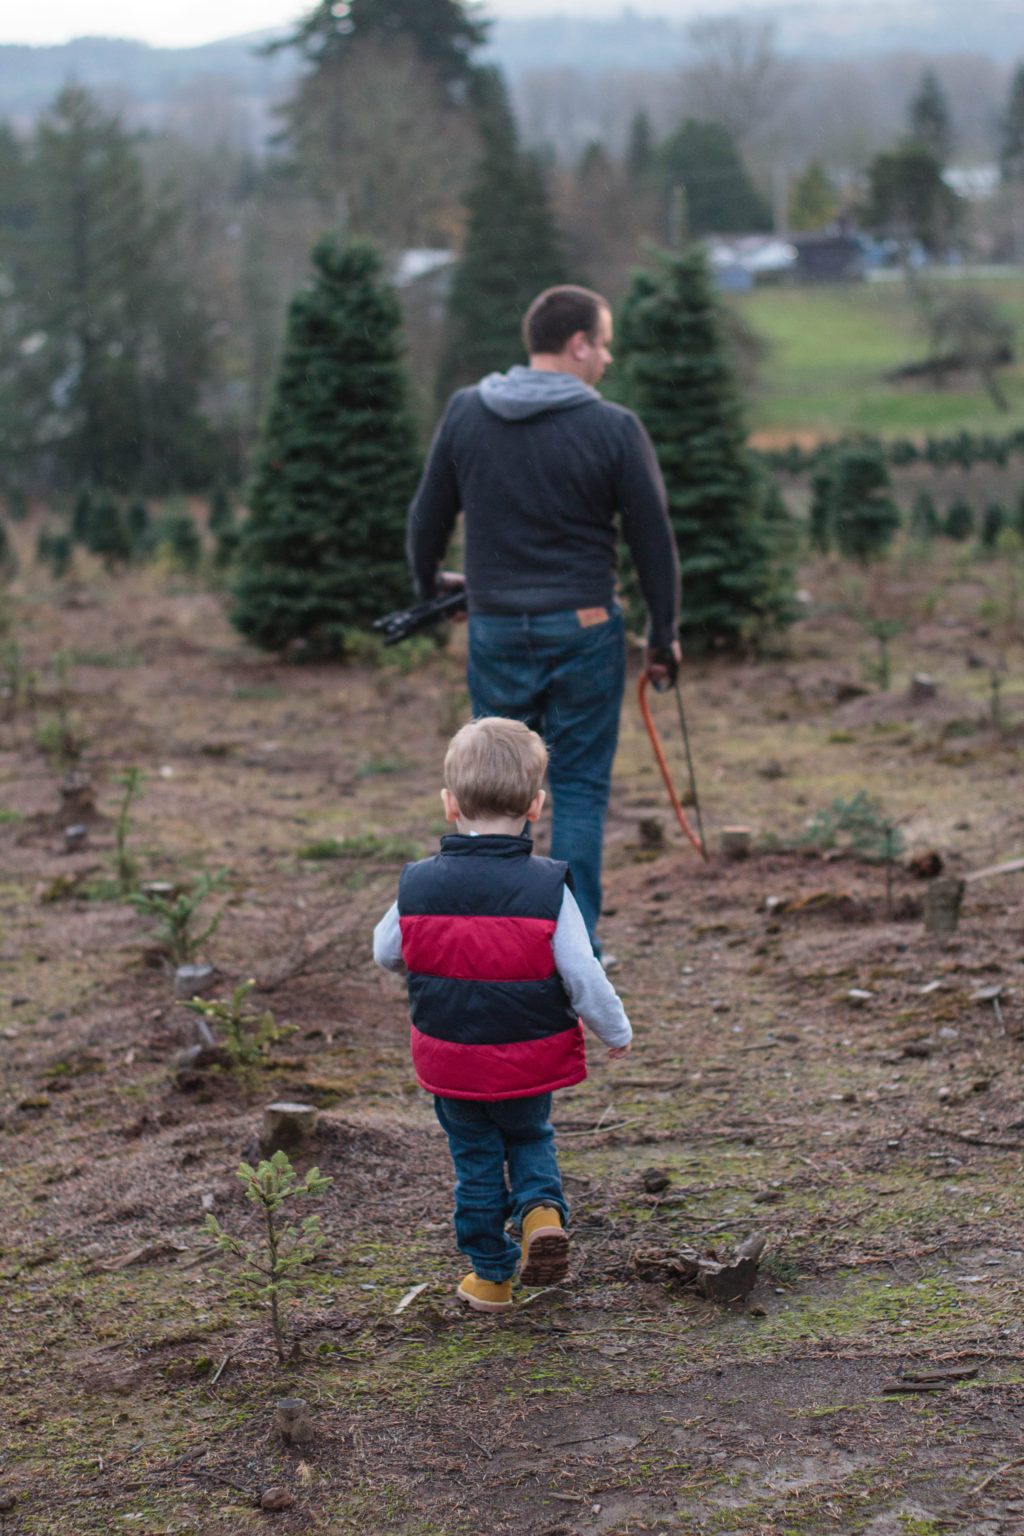 It is totally fun to go Christmas tree hunting with a toddler!